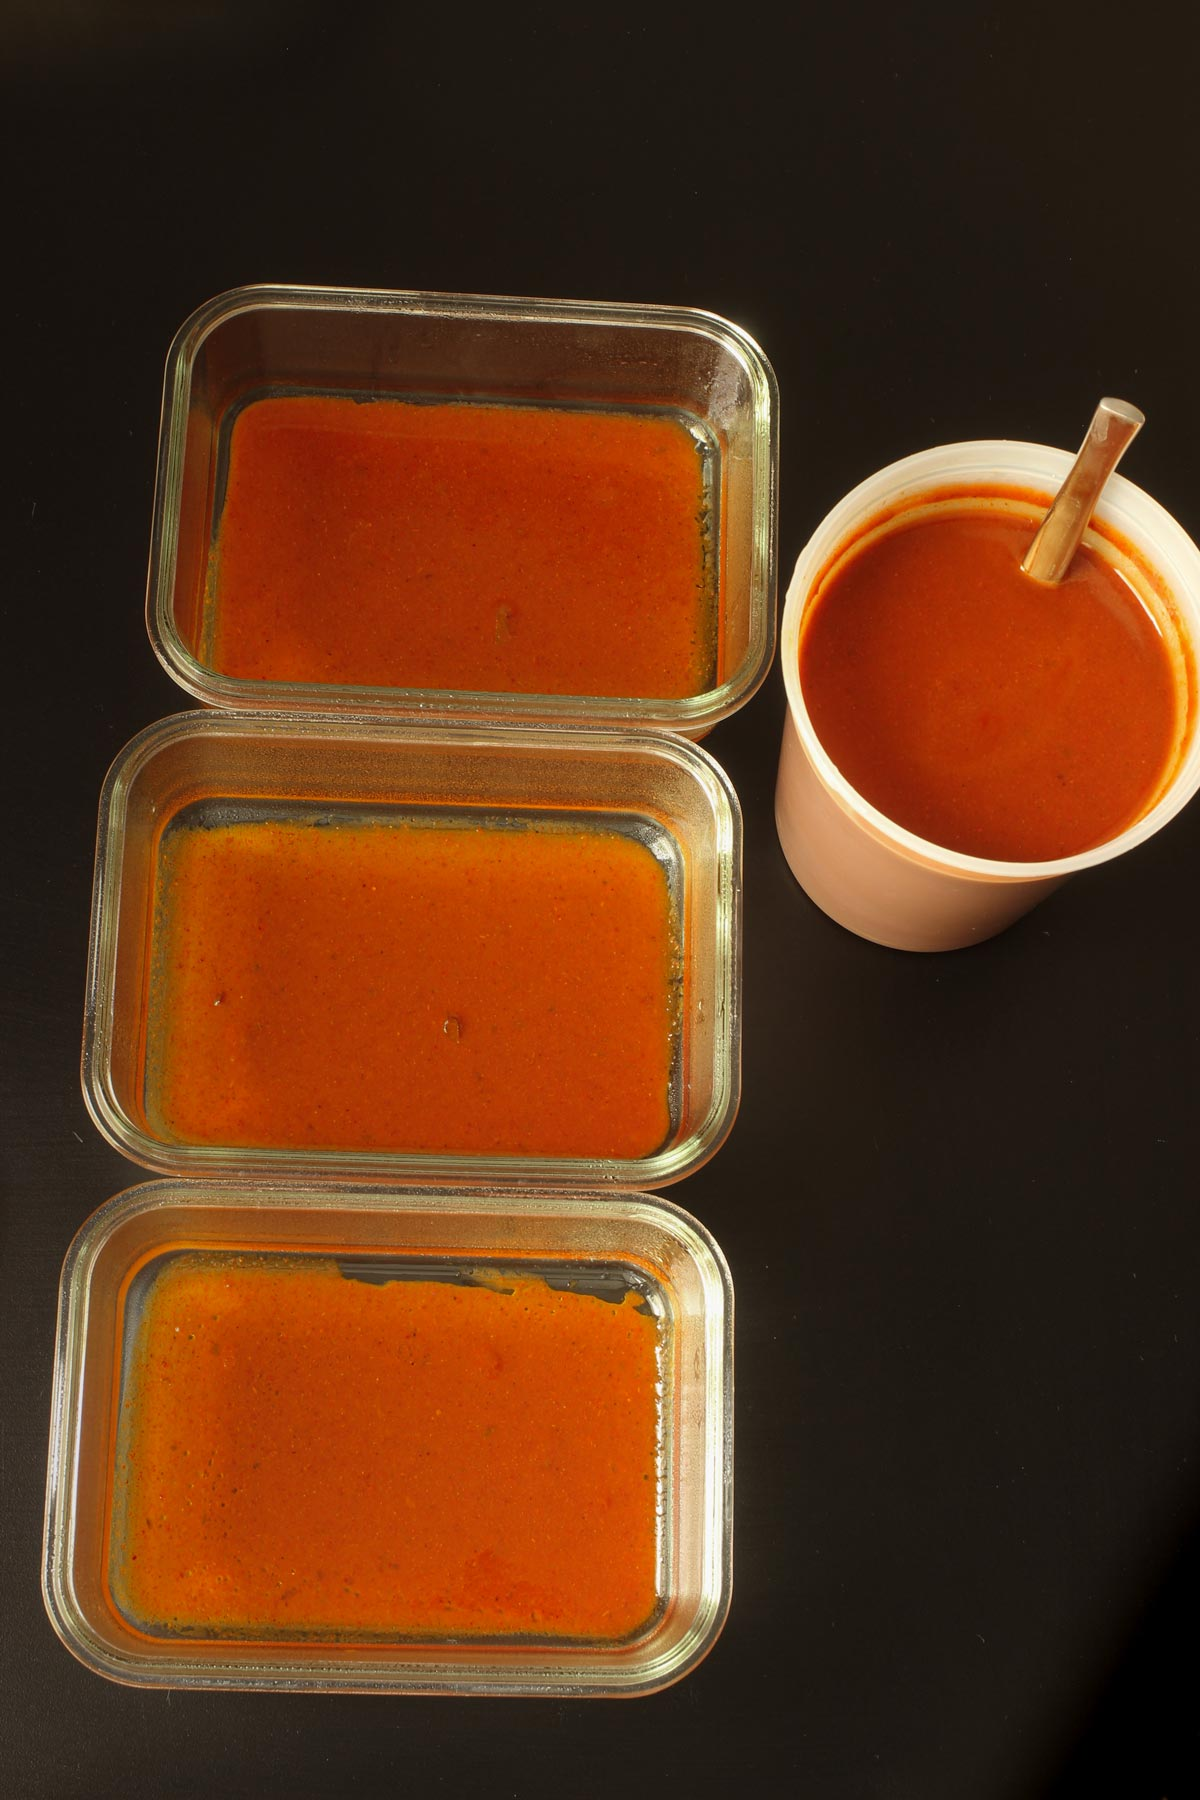 individual glass dishes with enchilada sauce spread across the bottoms.